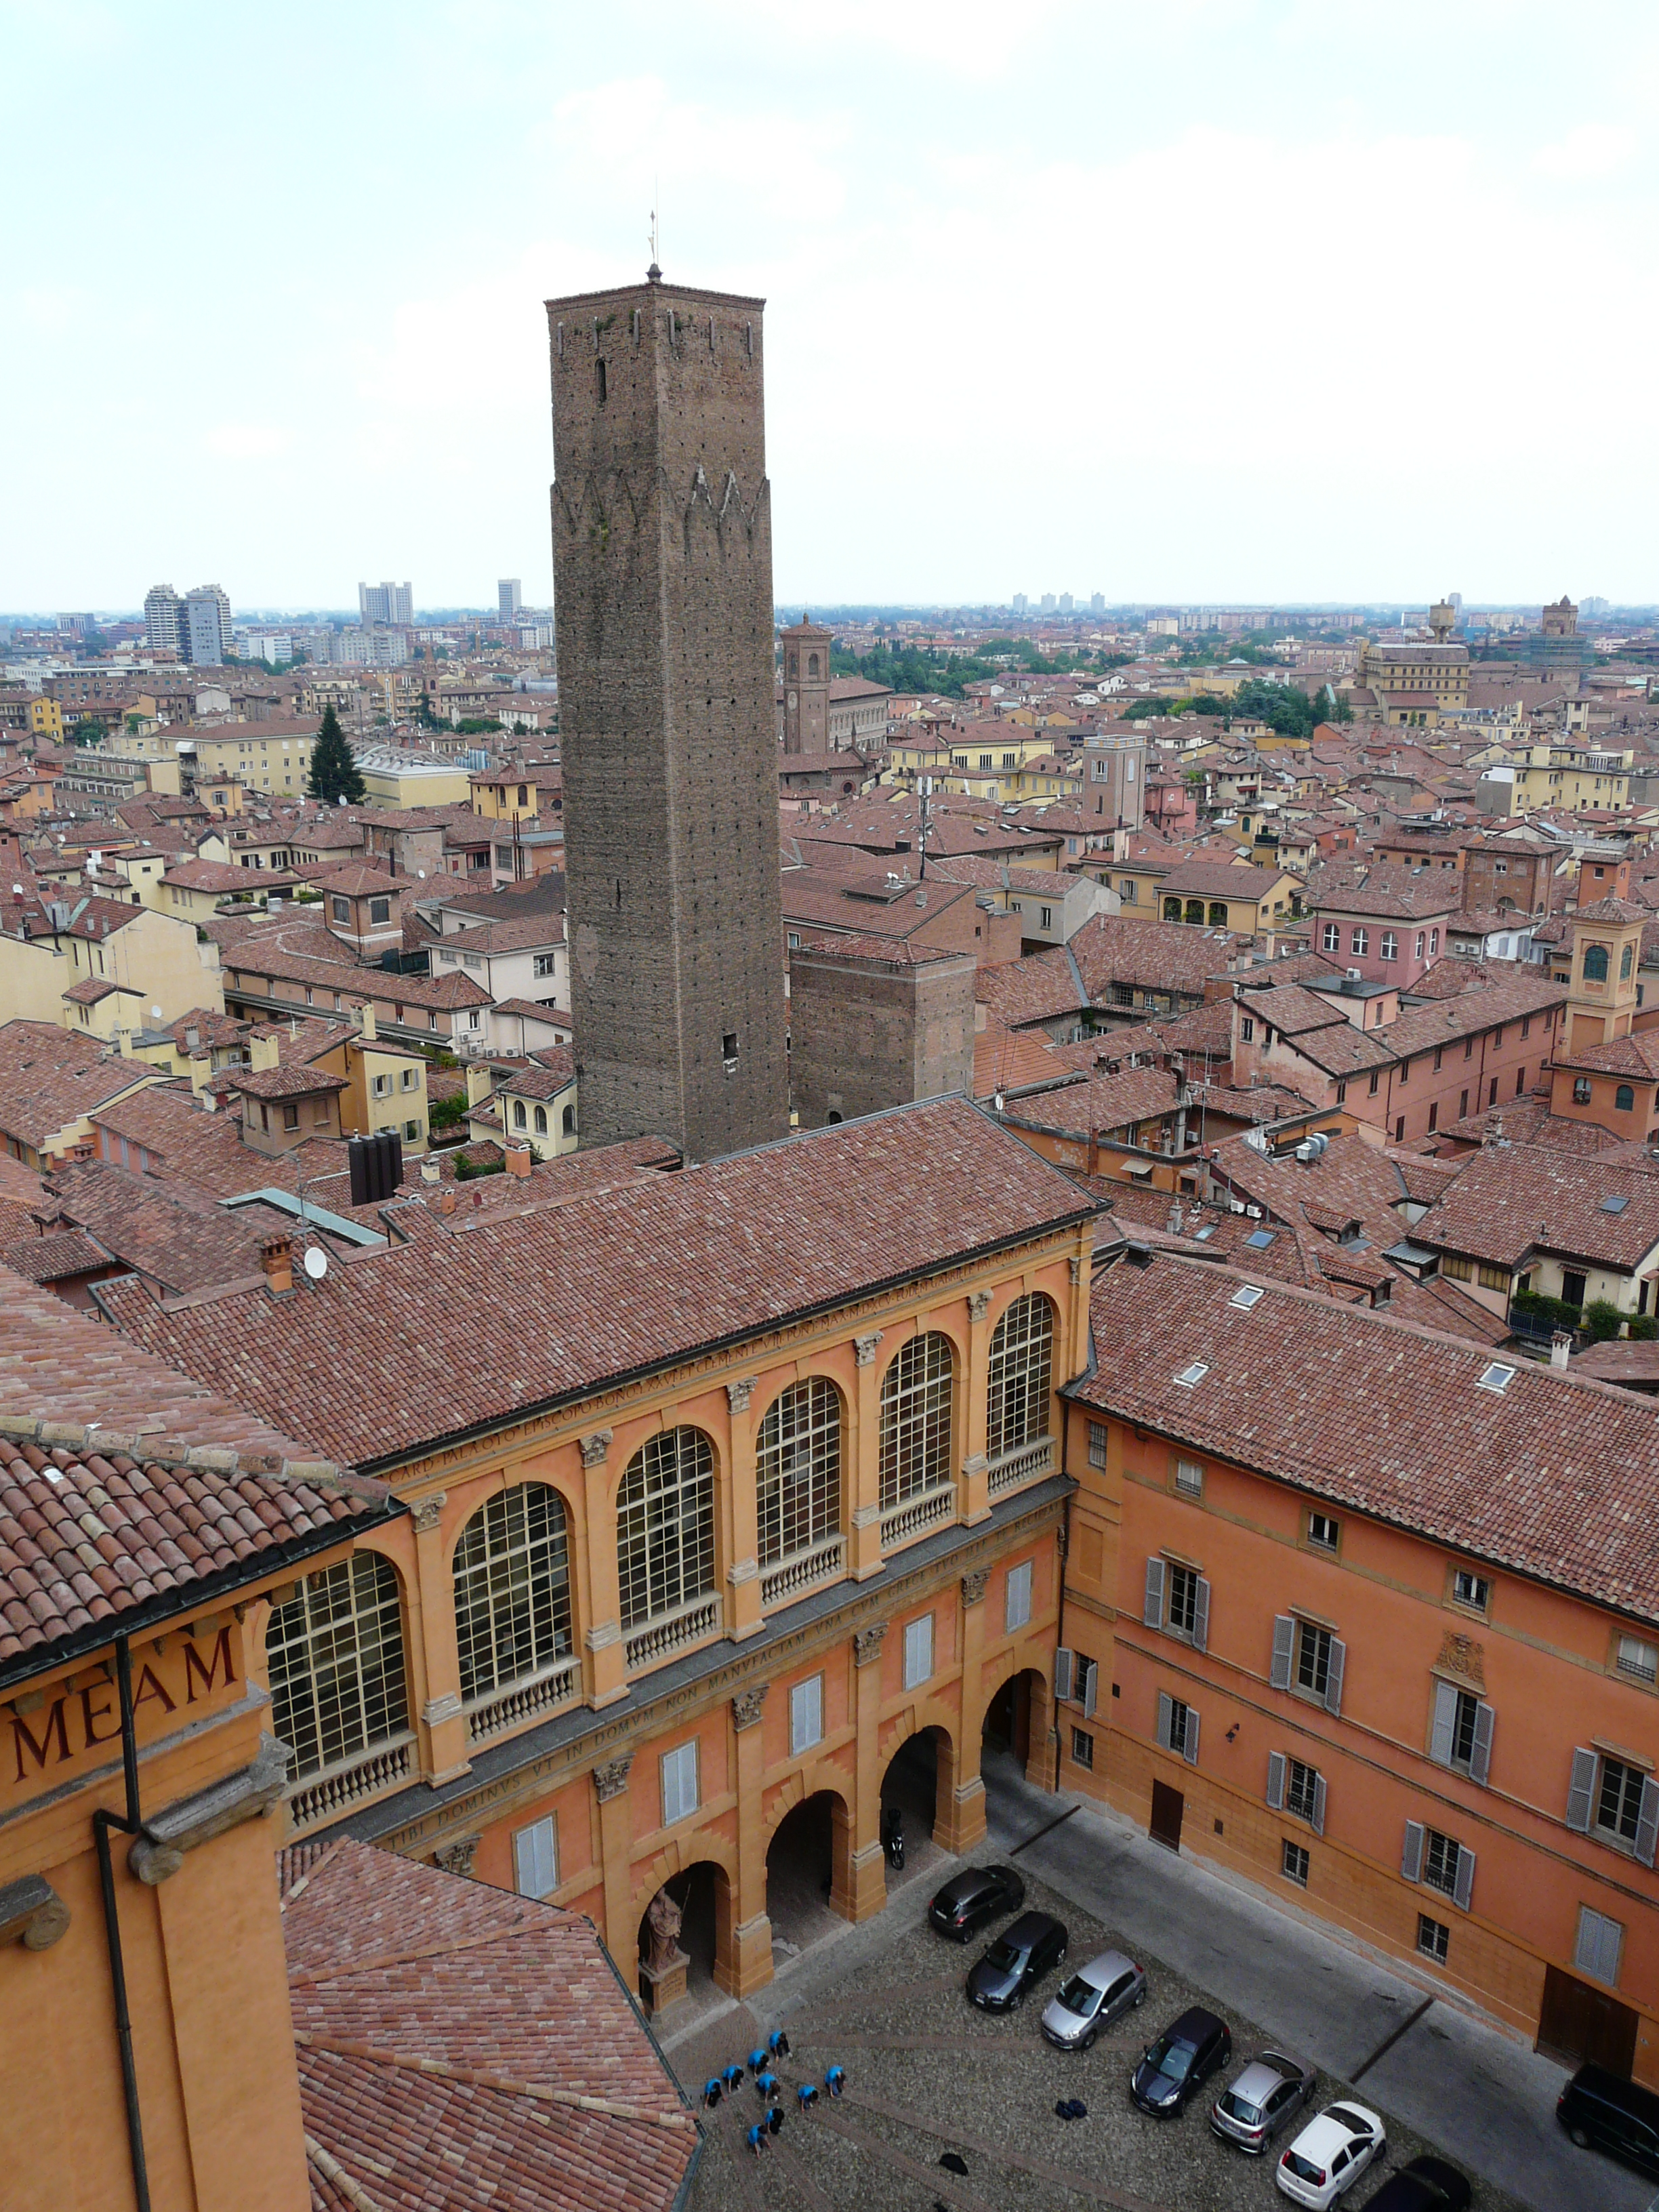 The Best of Bologna - Torre Prendiparte